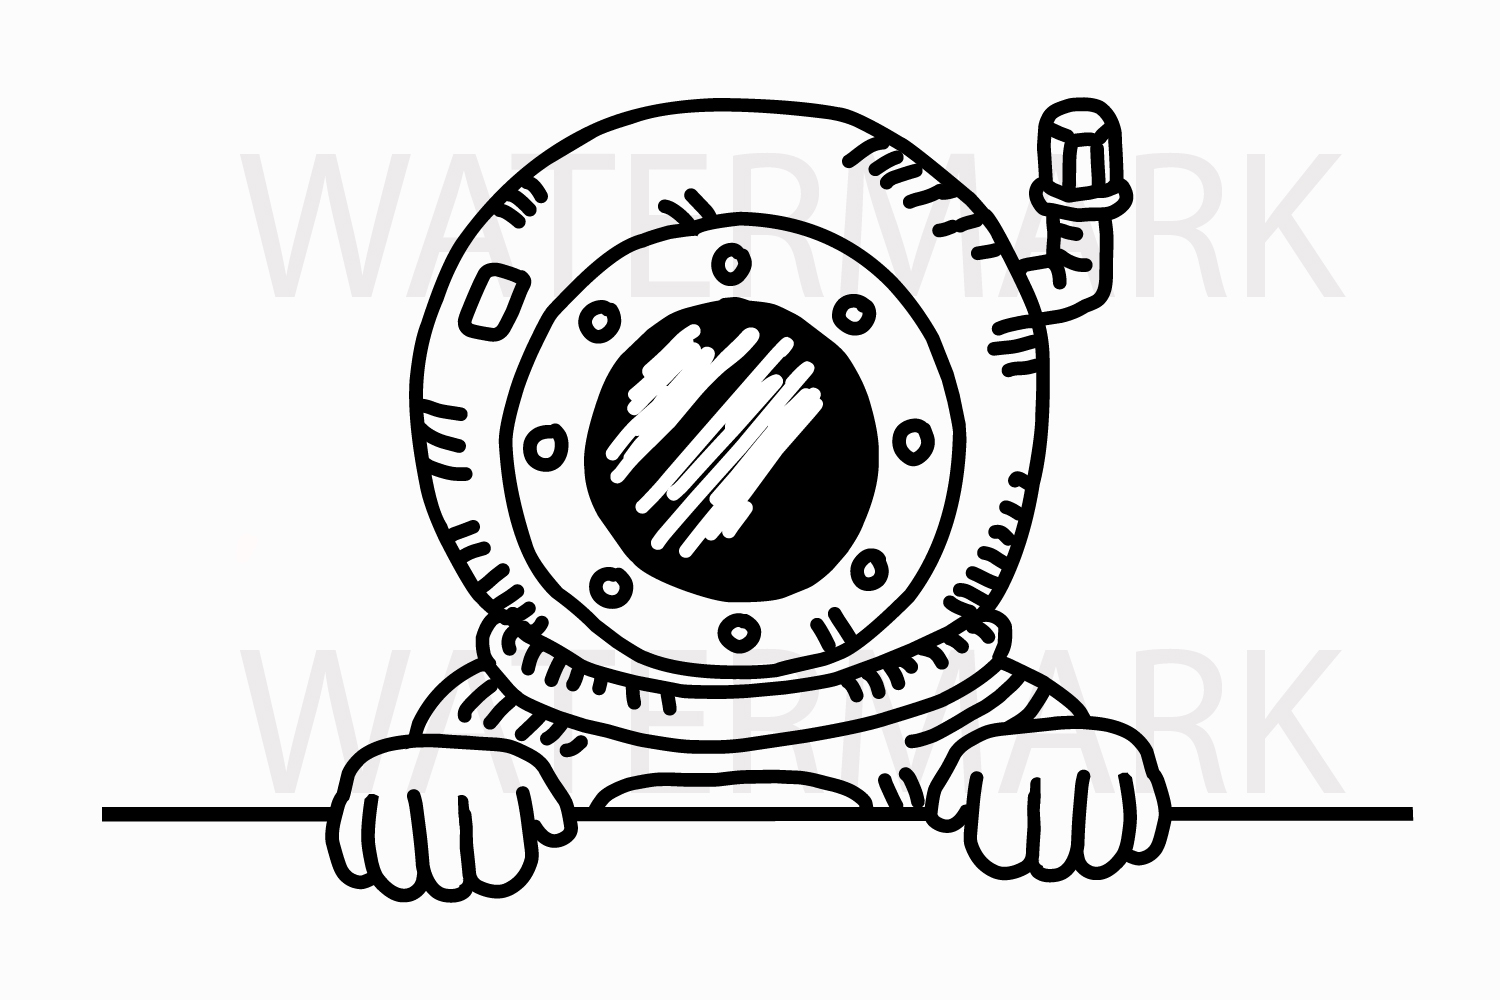 Underwater Guy Peeping and saying hello - SVG/JPG/PNG Hand Drawing example image 1